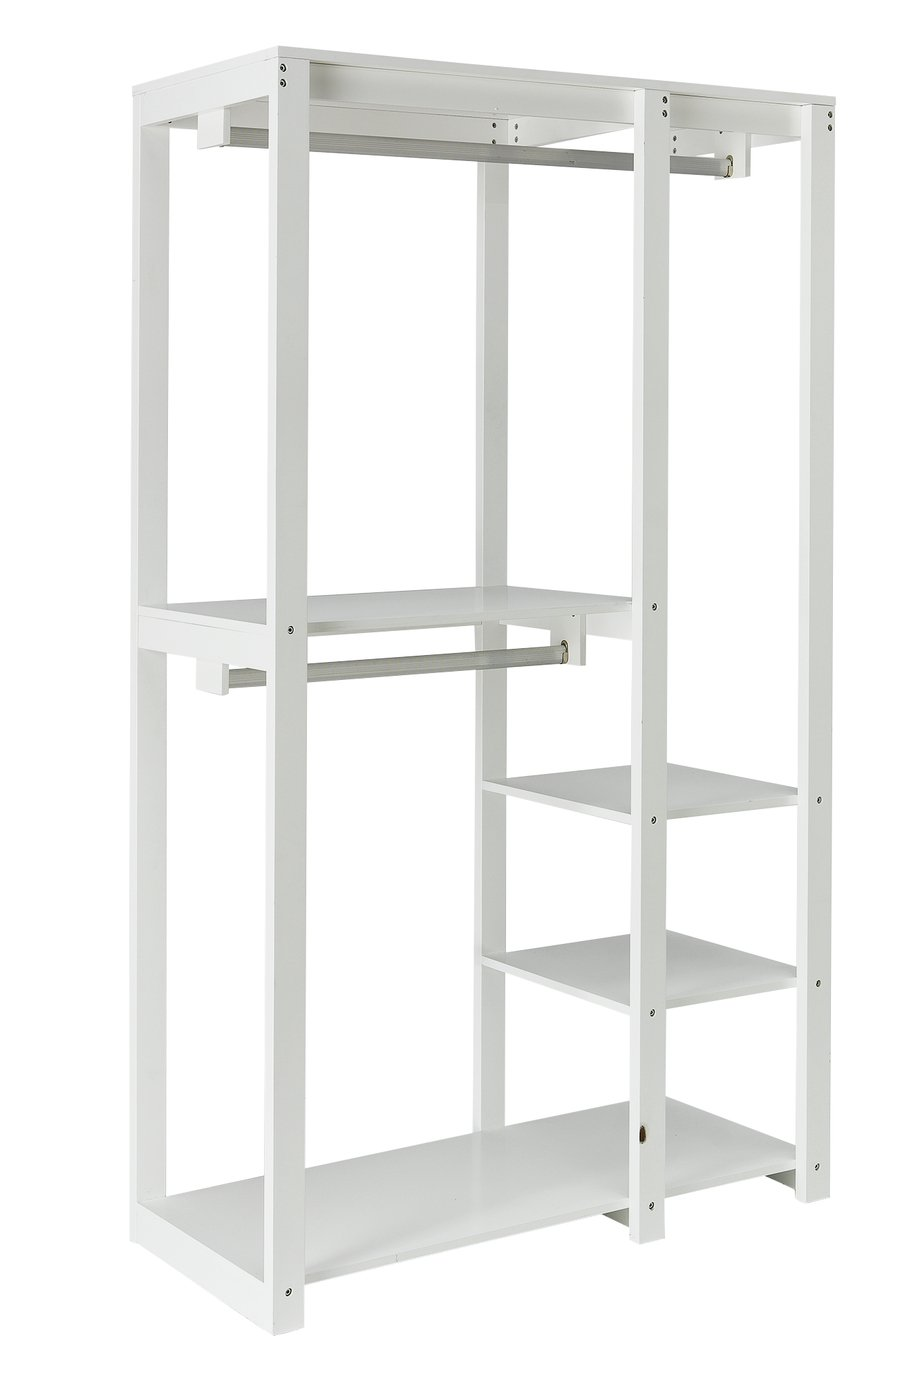 Argos Home Open Decorative Wardrobe Unit - White